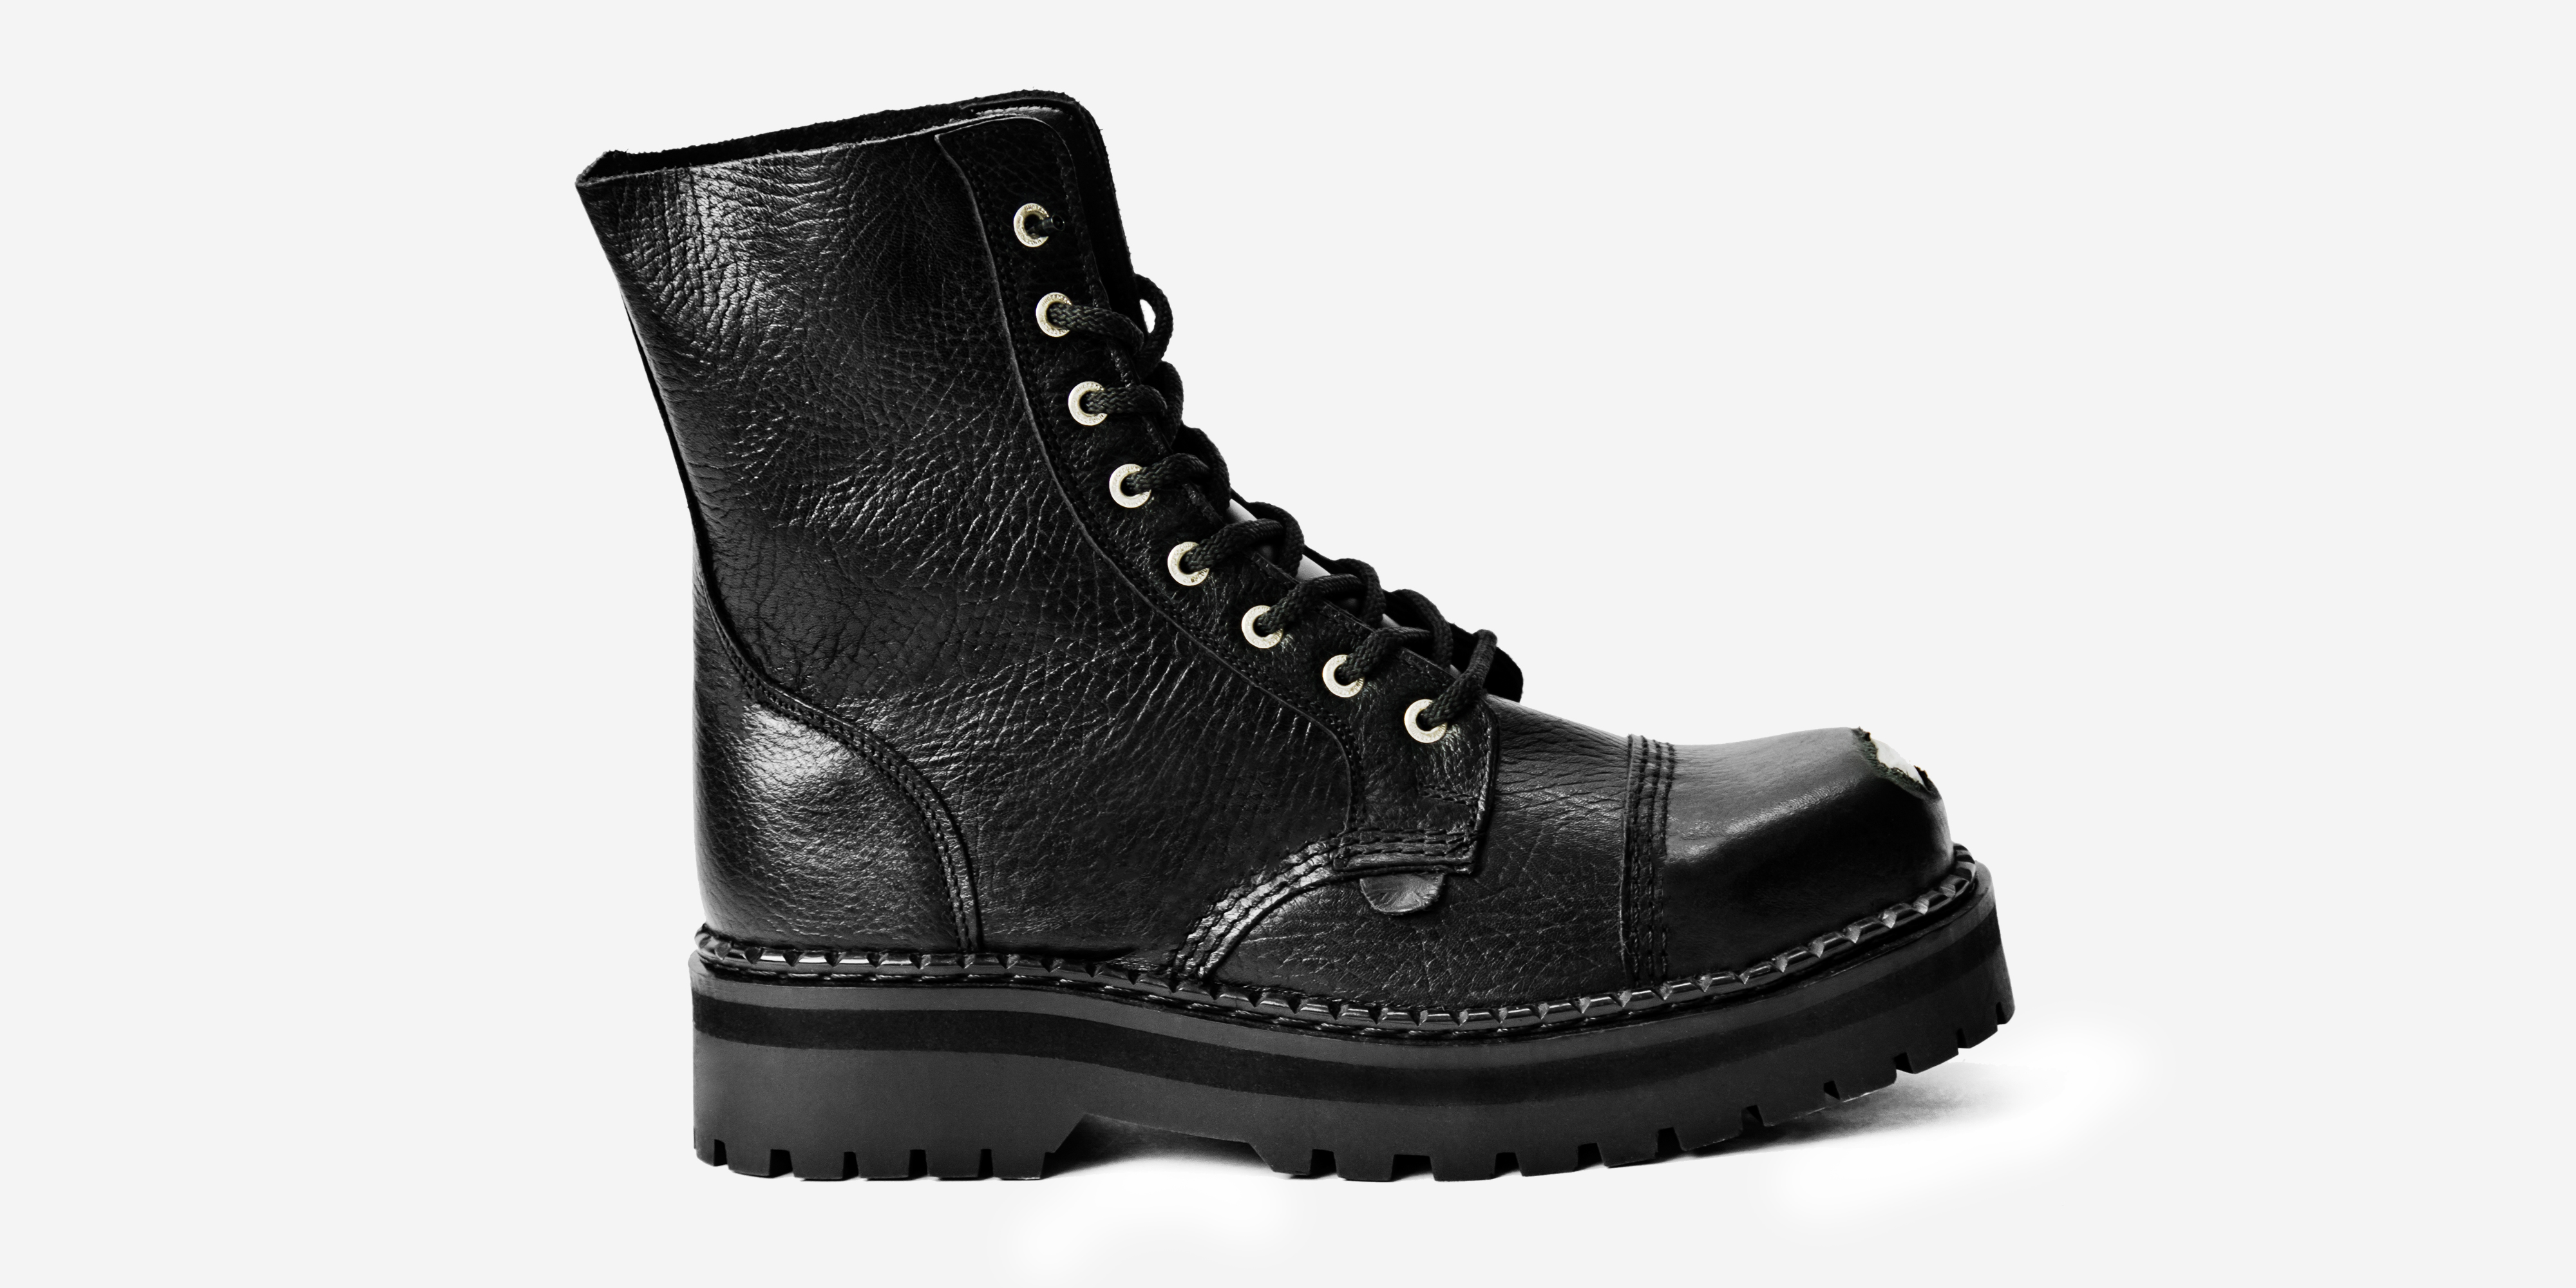 c11e4ff1555 Steel Caps Boots & Shoes - Underground England